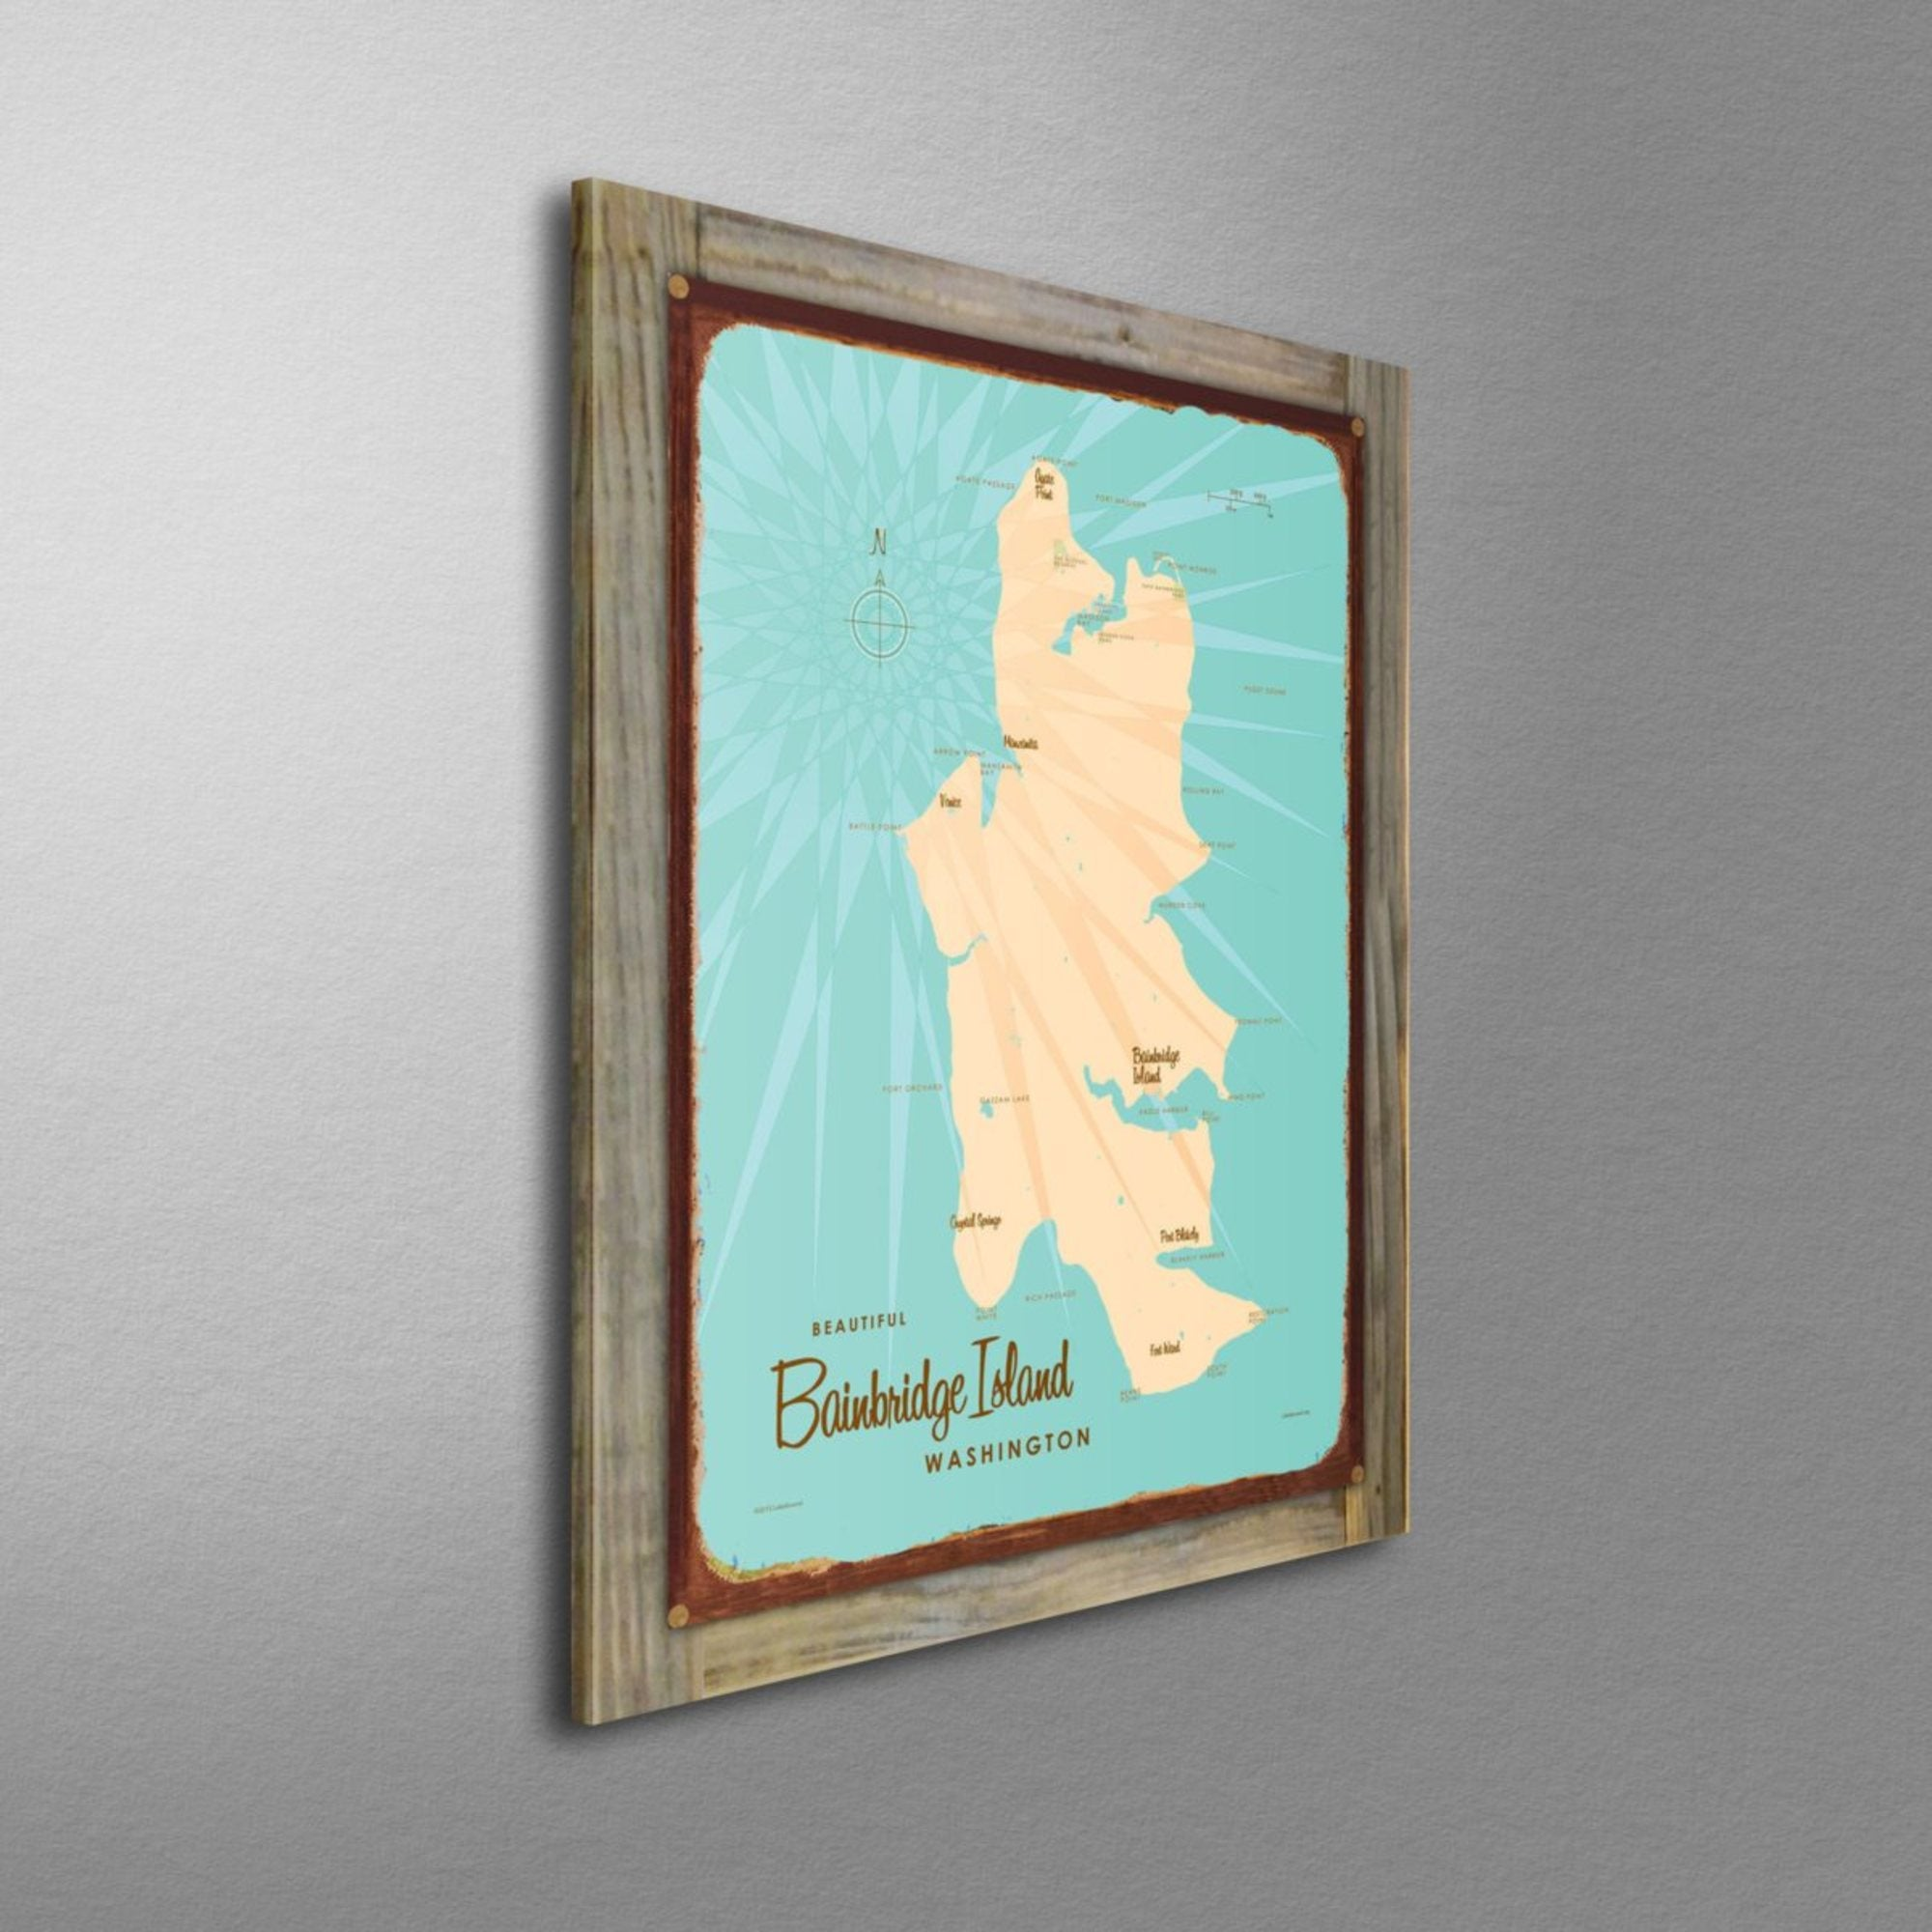 Bainbridge Island Washington, Wood-Mounted Rustic Metal Sign Map Art